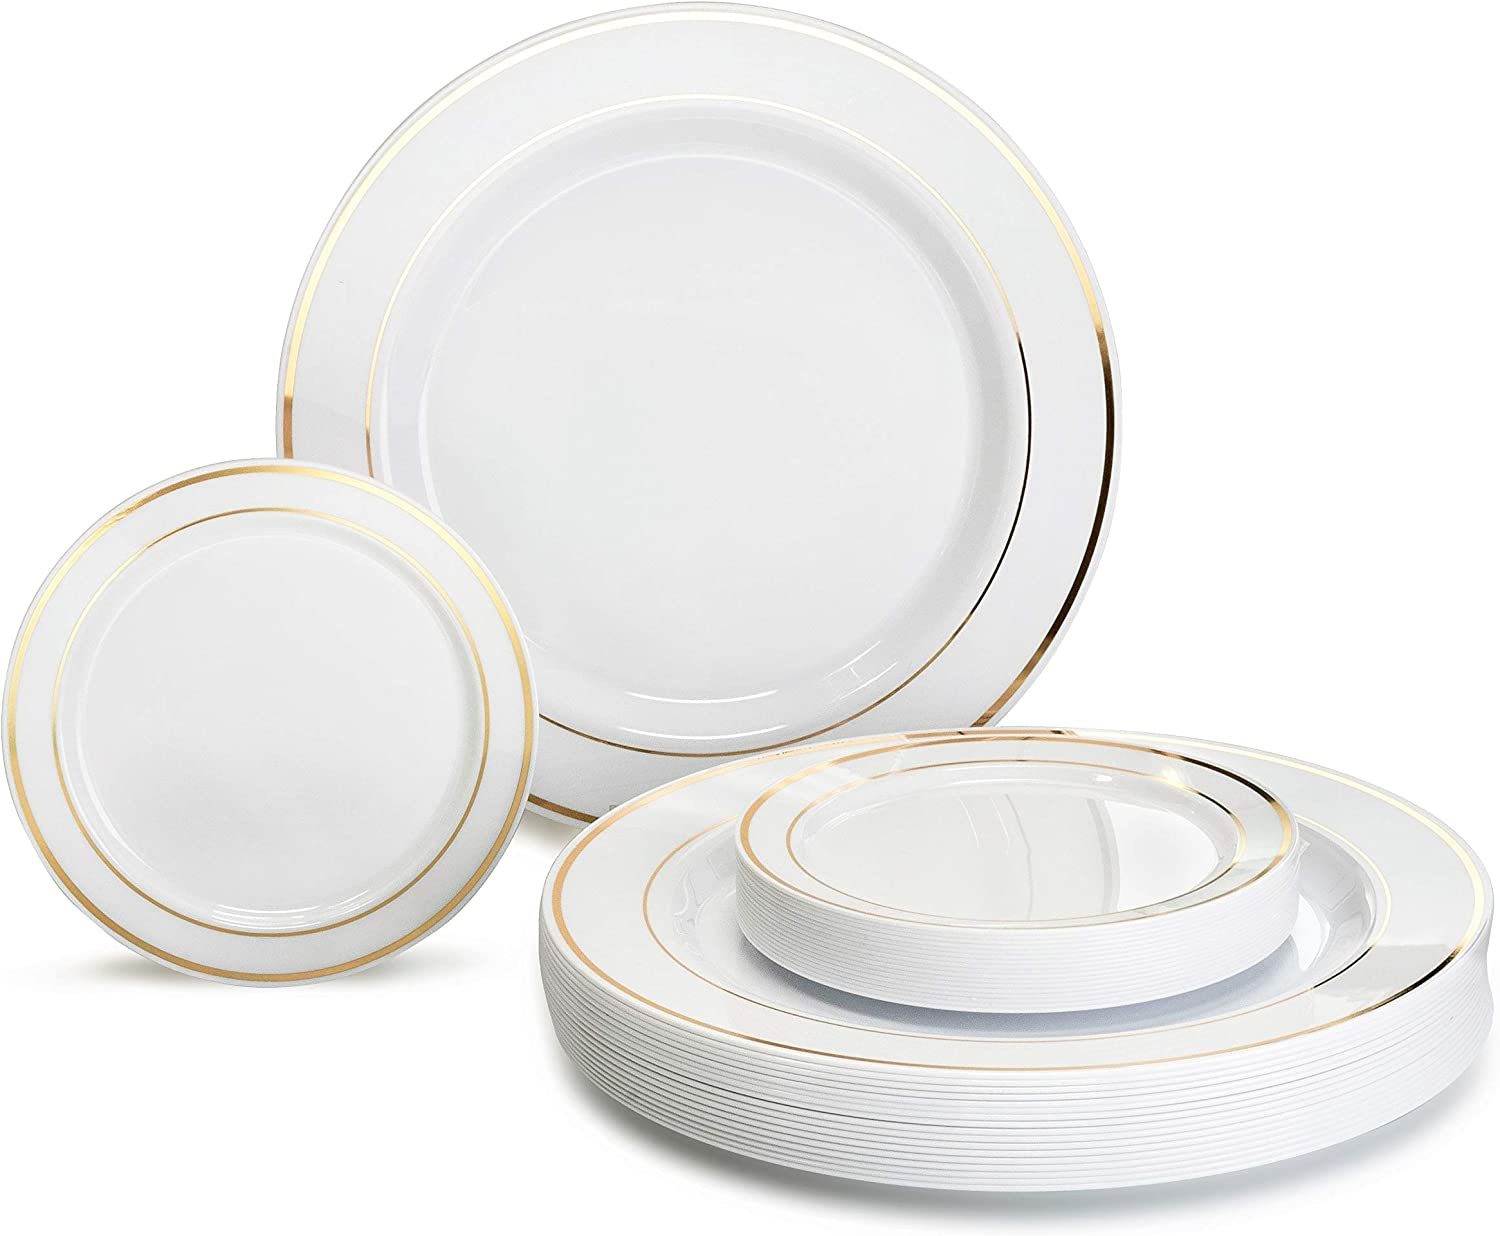 OCCASIONS 240 Plates Pack, Heavyweight Premium Disposable Plastic Plates Set 120 x 10.5'' Dinner + 120 x 6.25'' Dessert/Cake Plates (White & Gold Rim) 71g7ktIQFKL